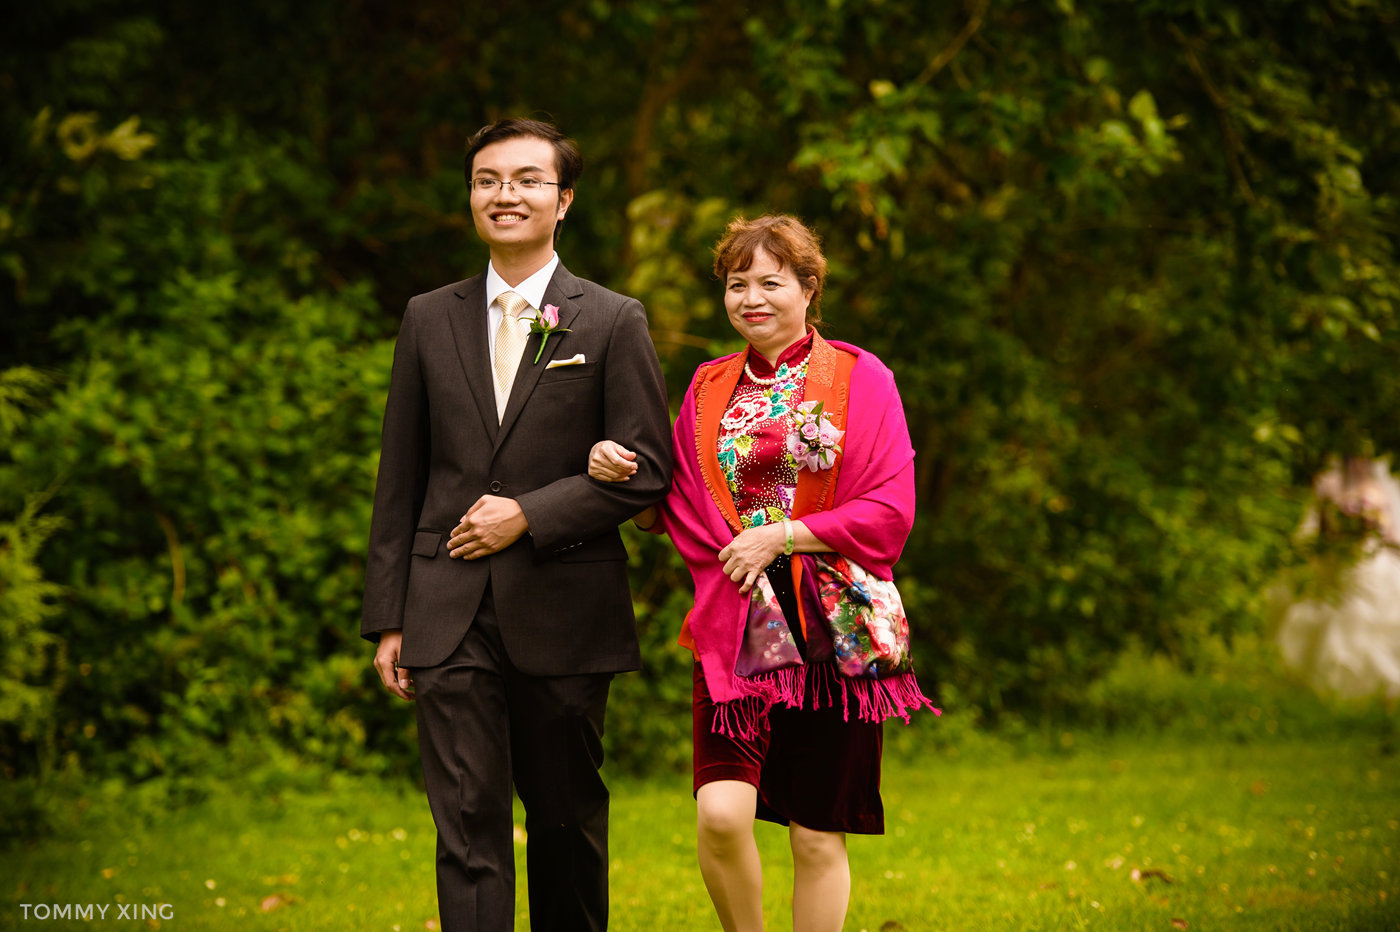 Seattle Wedding and pre wedding Los Angeles Tommy Xing Photography 西雅图洛杉矶旧金山婚礼婚纱照摄影师 066.jpg